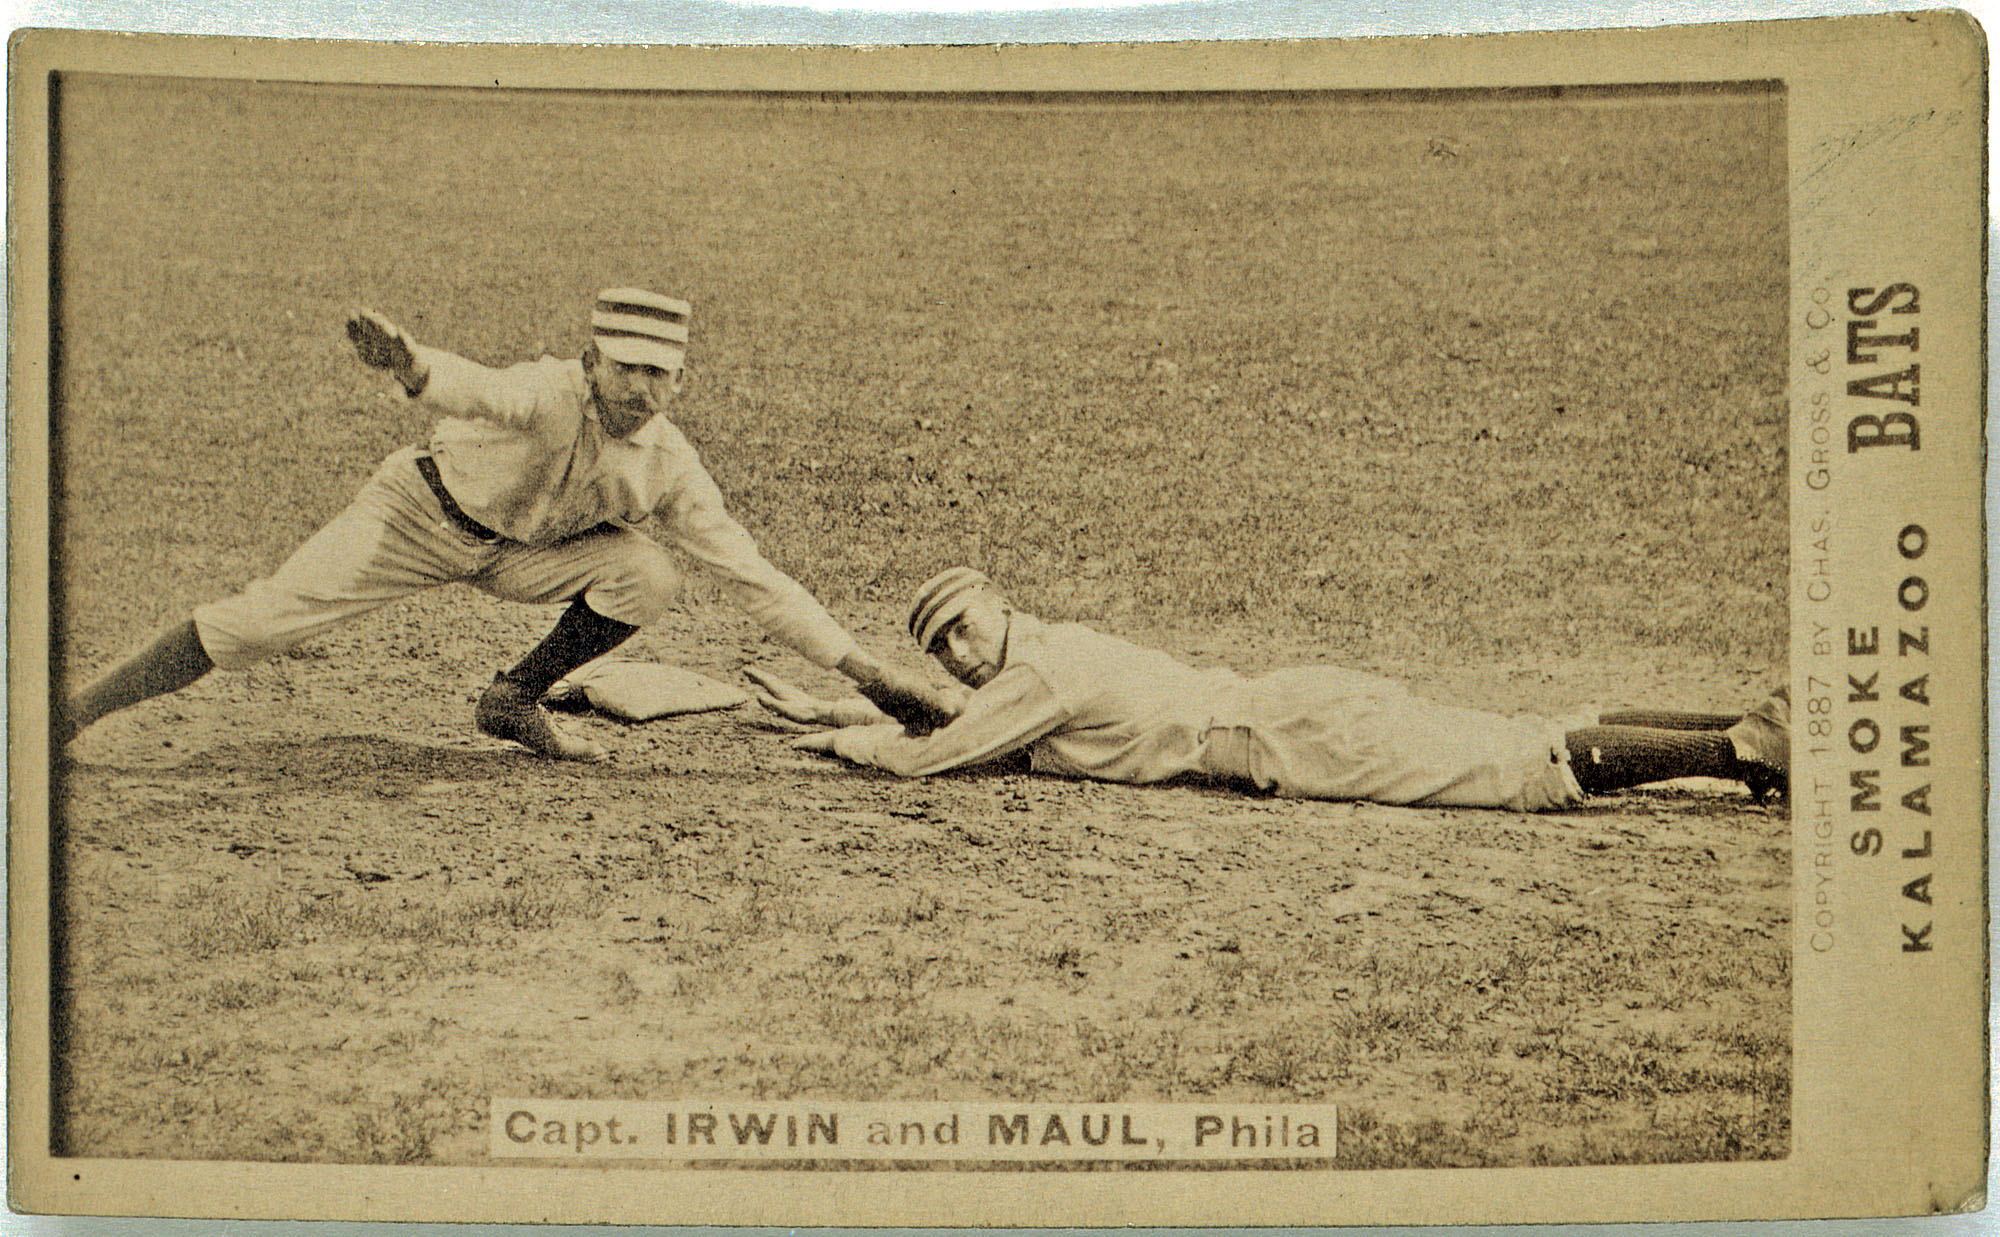 Arthur Irwin & Albert Maul of the Philadelphia Quakers/Phillies, 1887